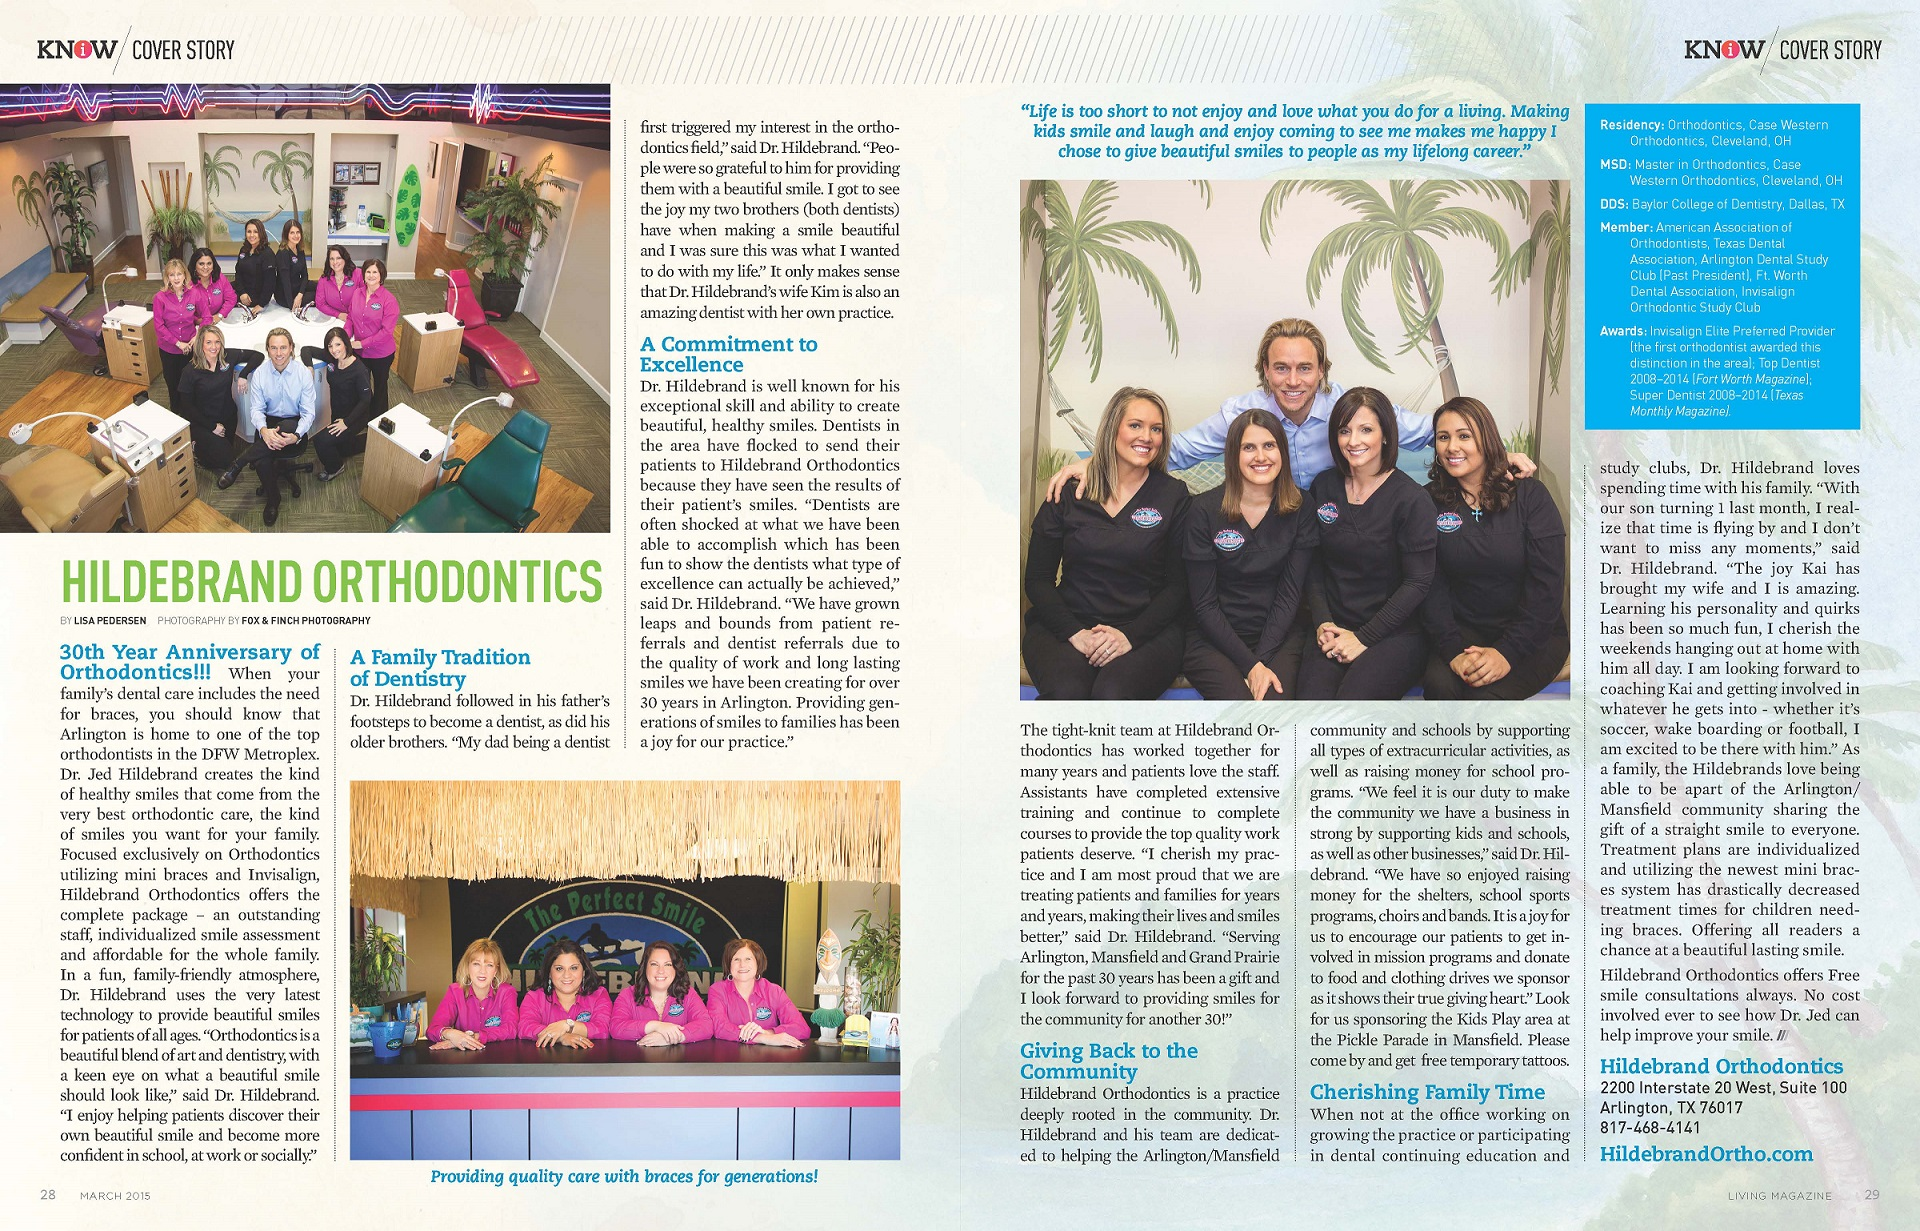 hildebrand orthodontics in living magazine